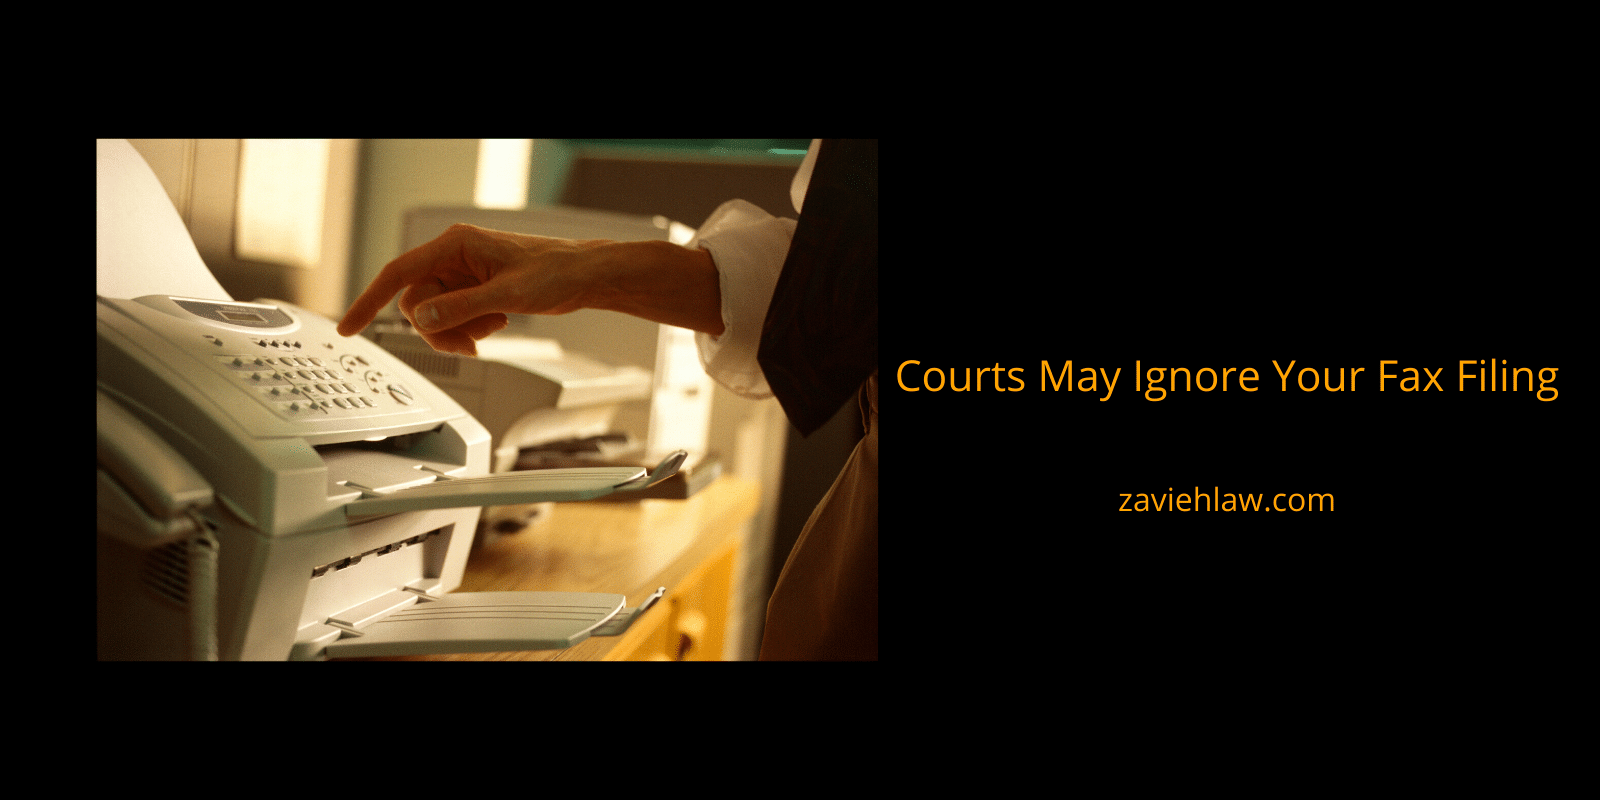 Courts may ignore your fax filing